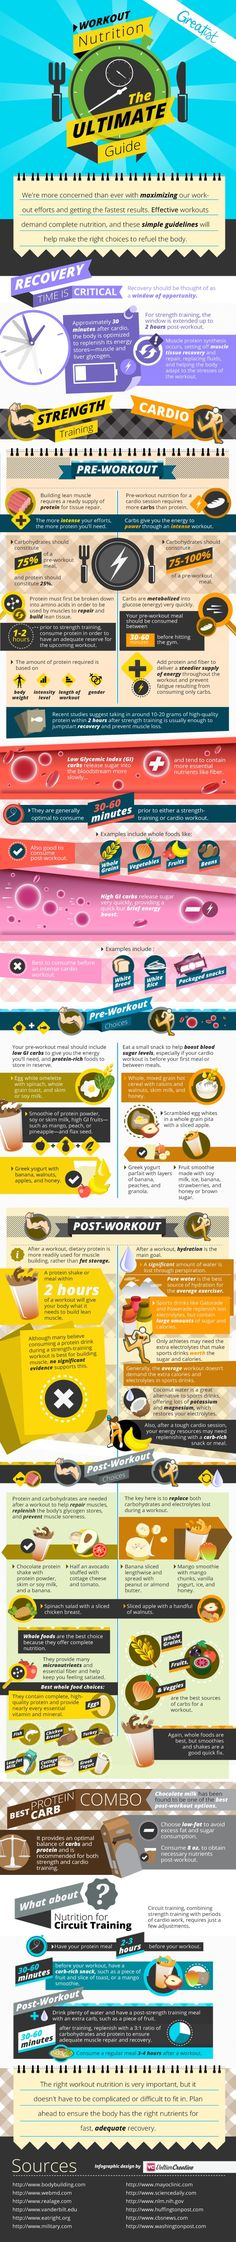 The Complete Guide to Workout Nutrition.